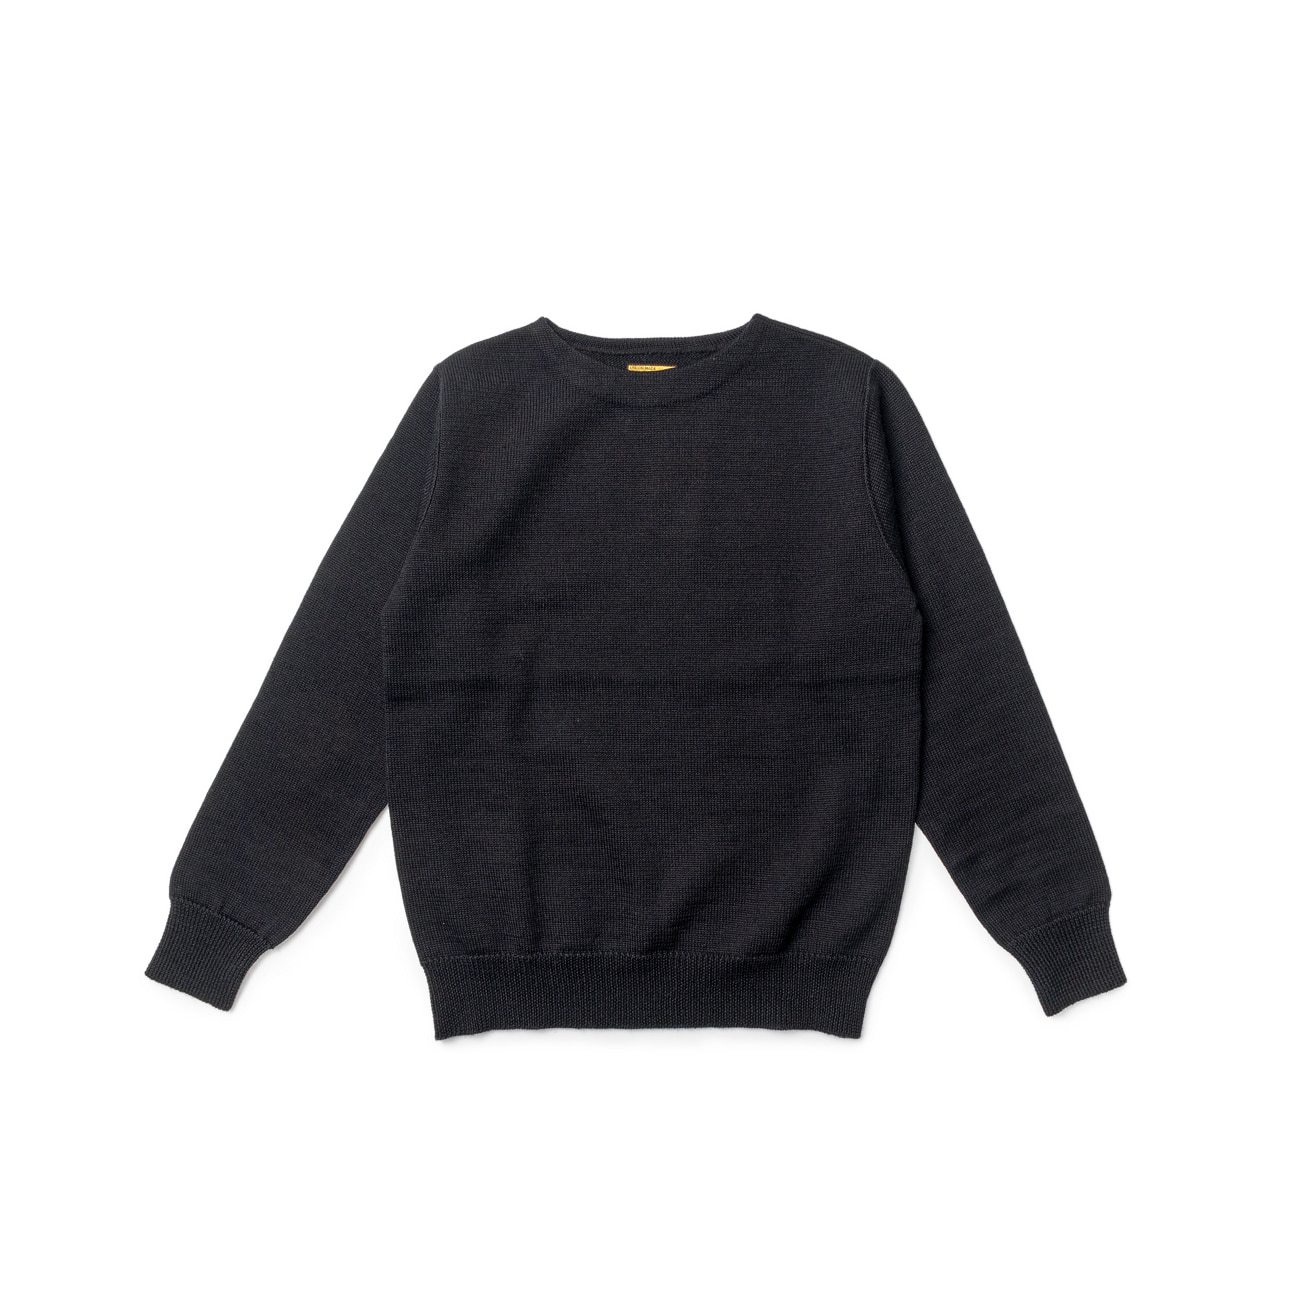 30s Crew Neck Sweater